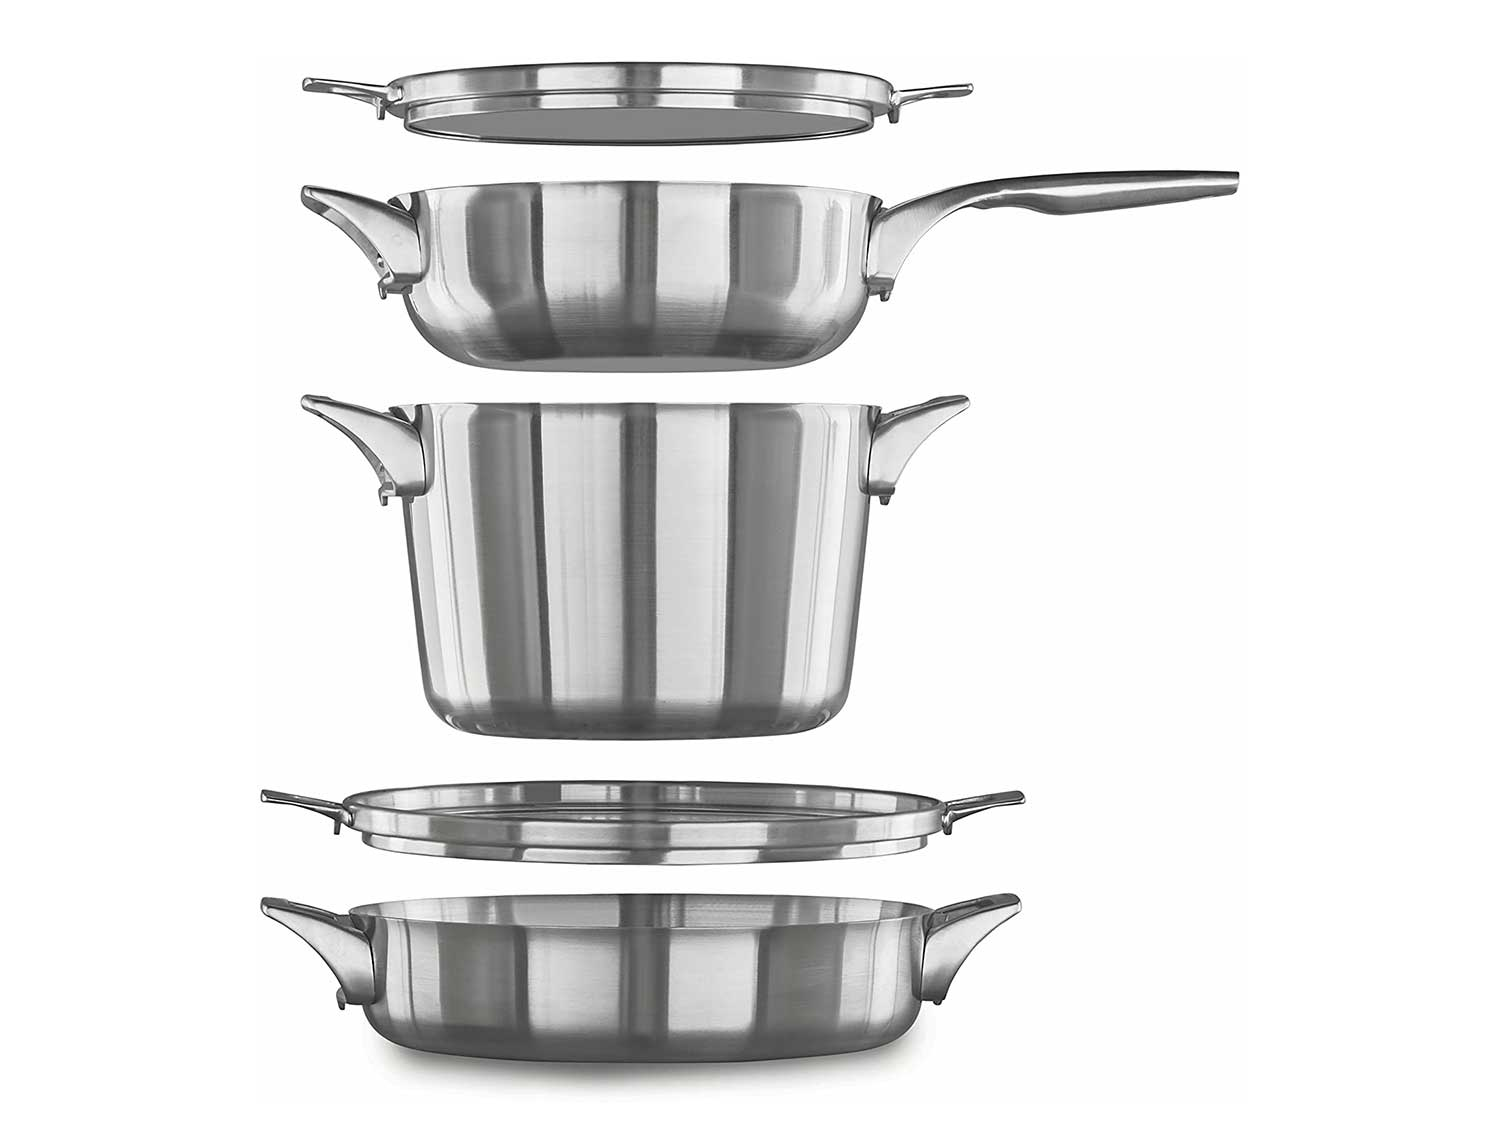 Calphalon 5pc stainless steel space saver